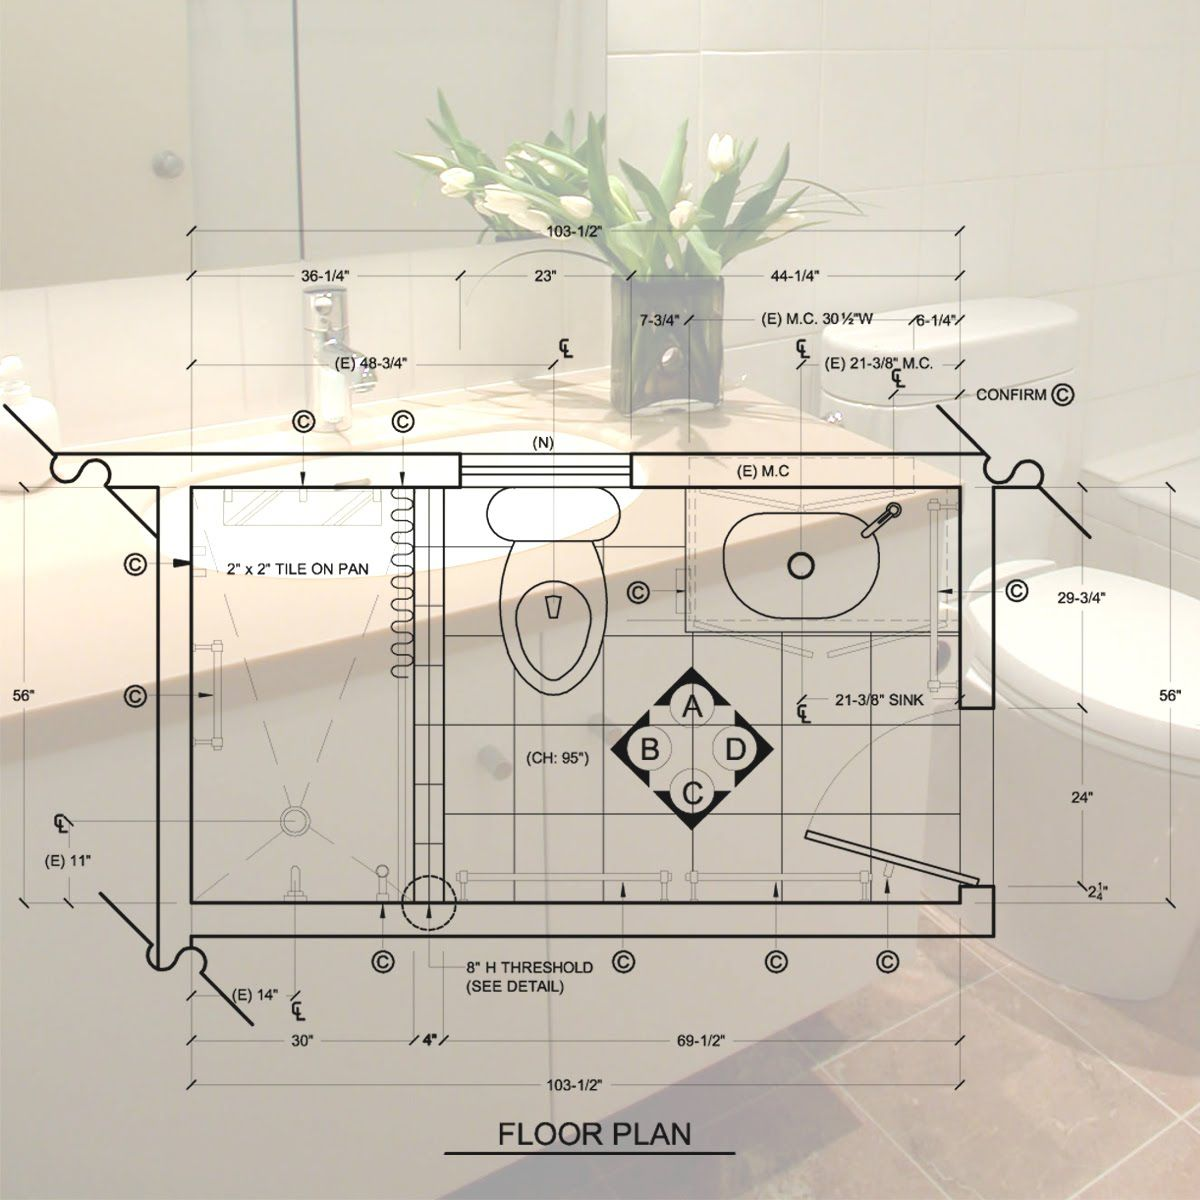 8 x 7 bathroom layout ideas | ideas | pinterest | bathroom layout